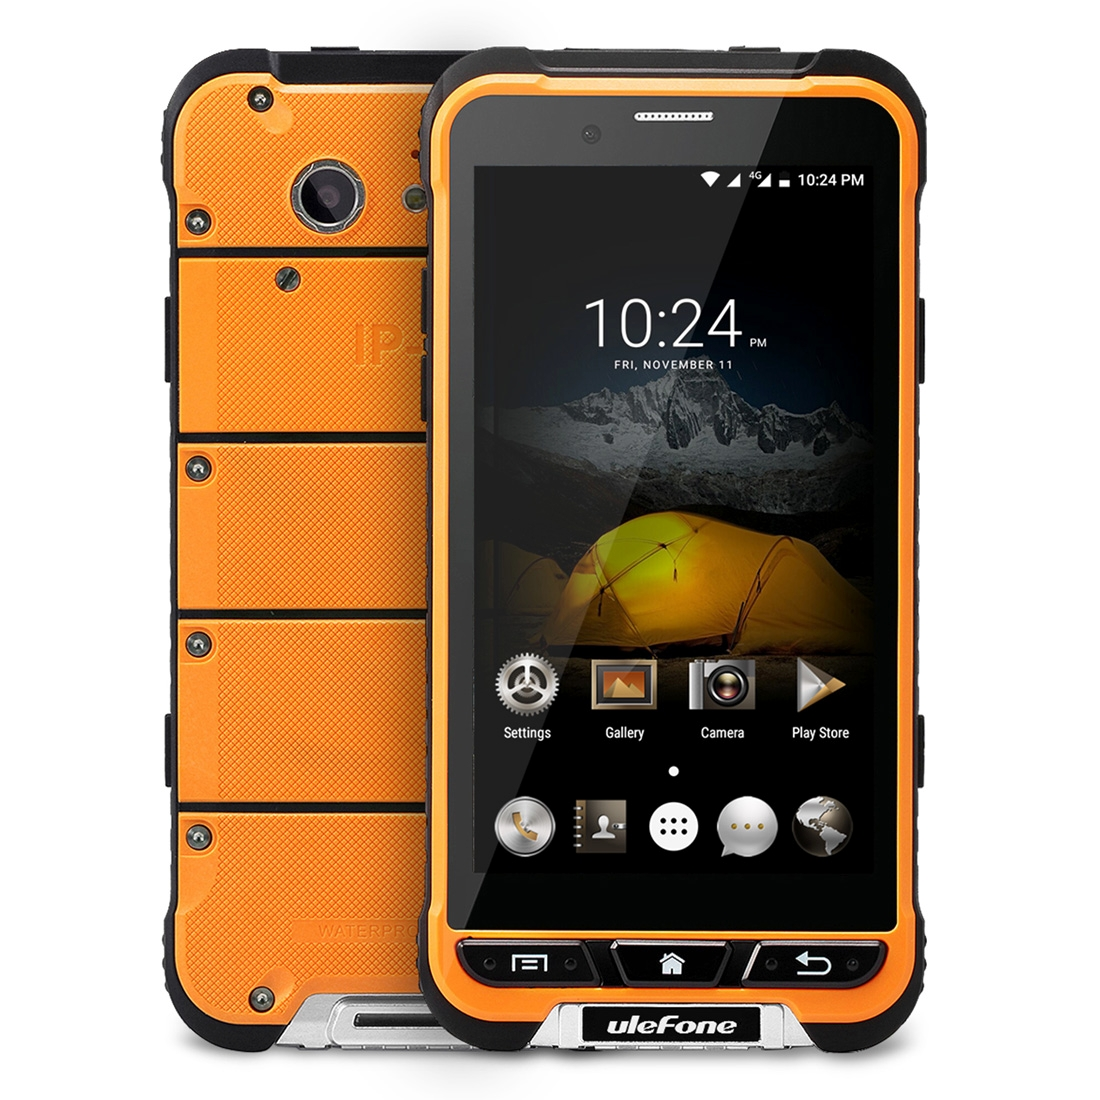 uleFone Ulefone Armor - Octa-Core, Android 6.0, IP68, 3GB RAM, Gorilla Glass 3, 13MP, oranžová